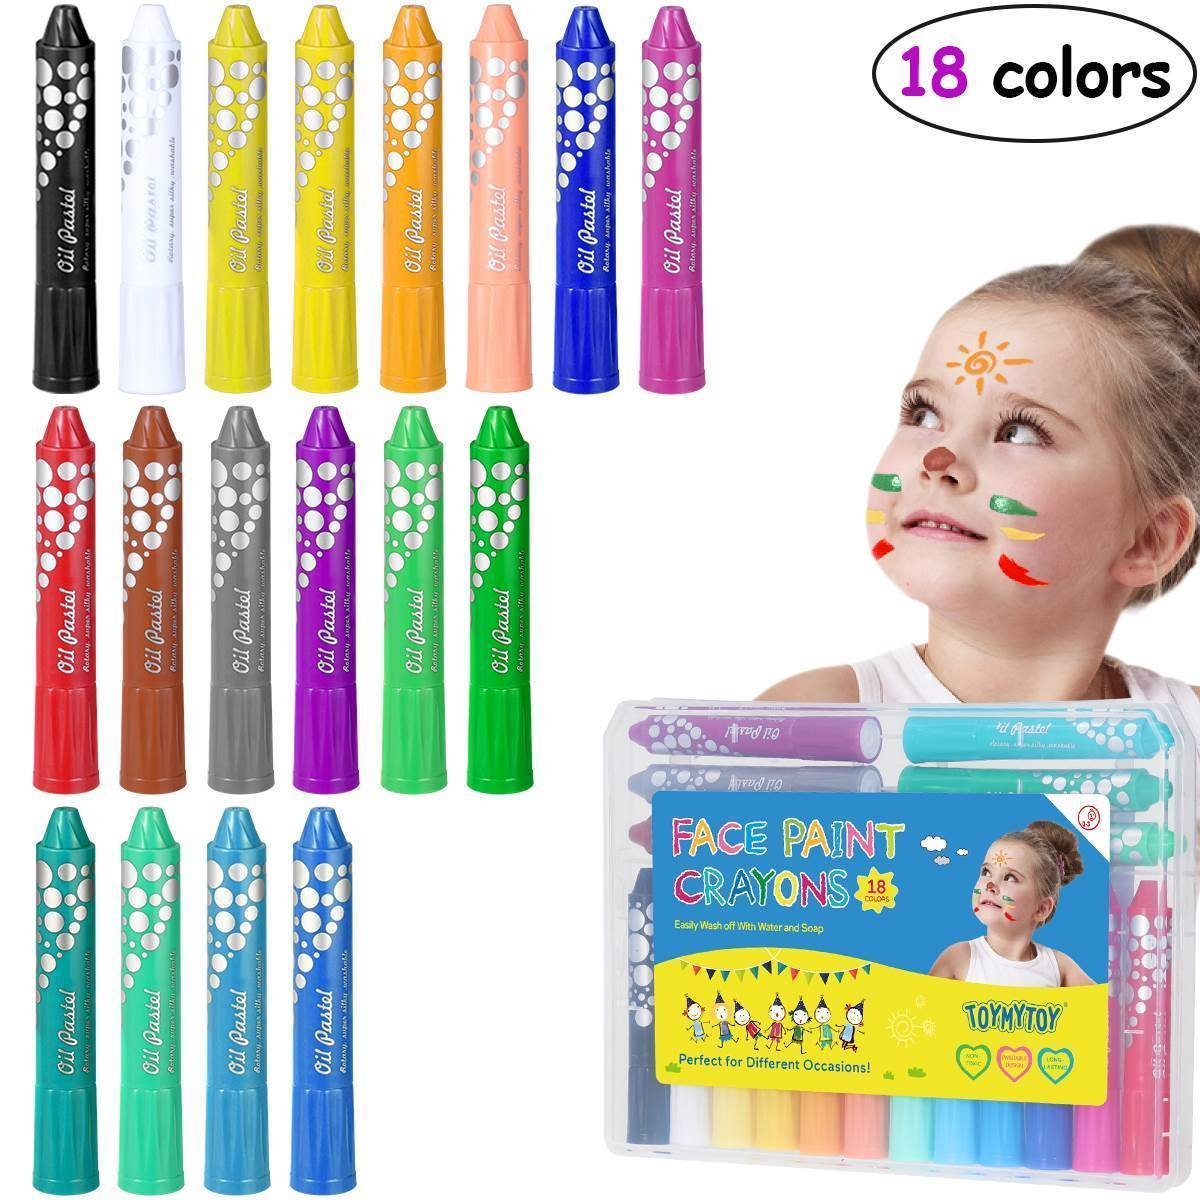 TOYMYTOY 18 Colors Bright Washable Twistable Face Paints for Party Makeup